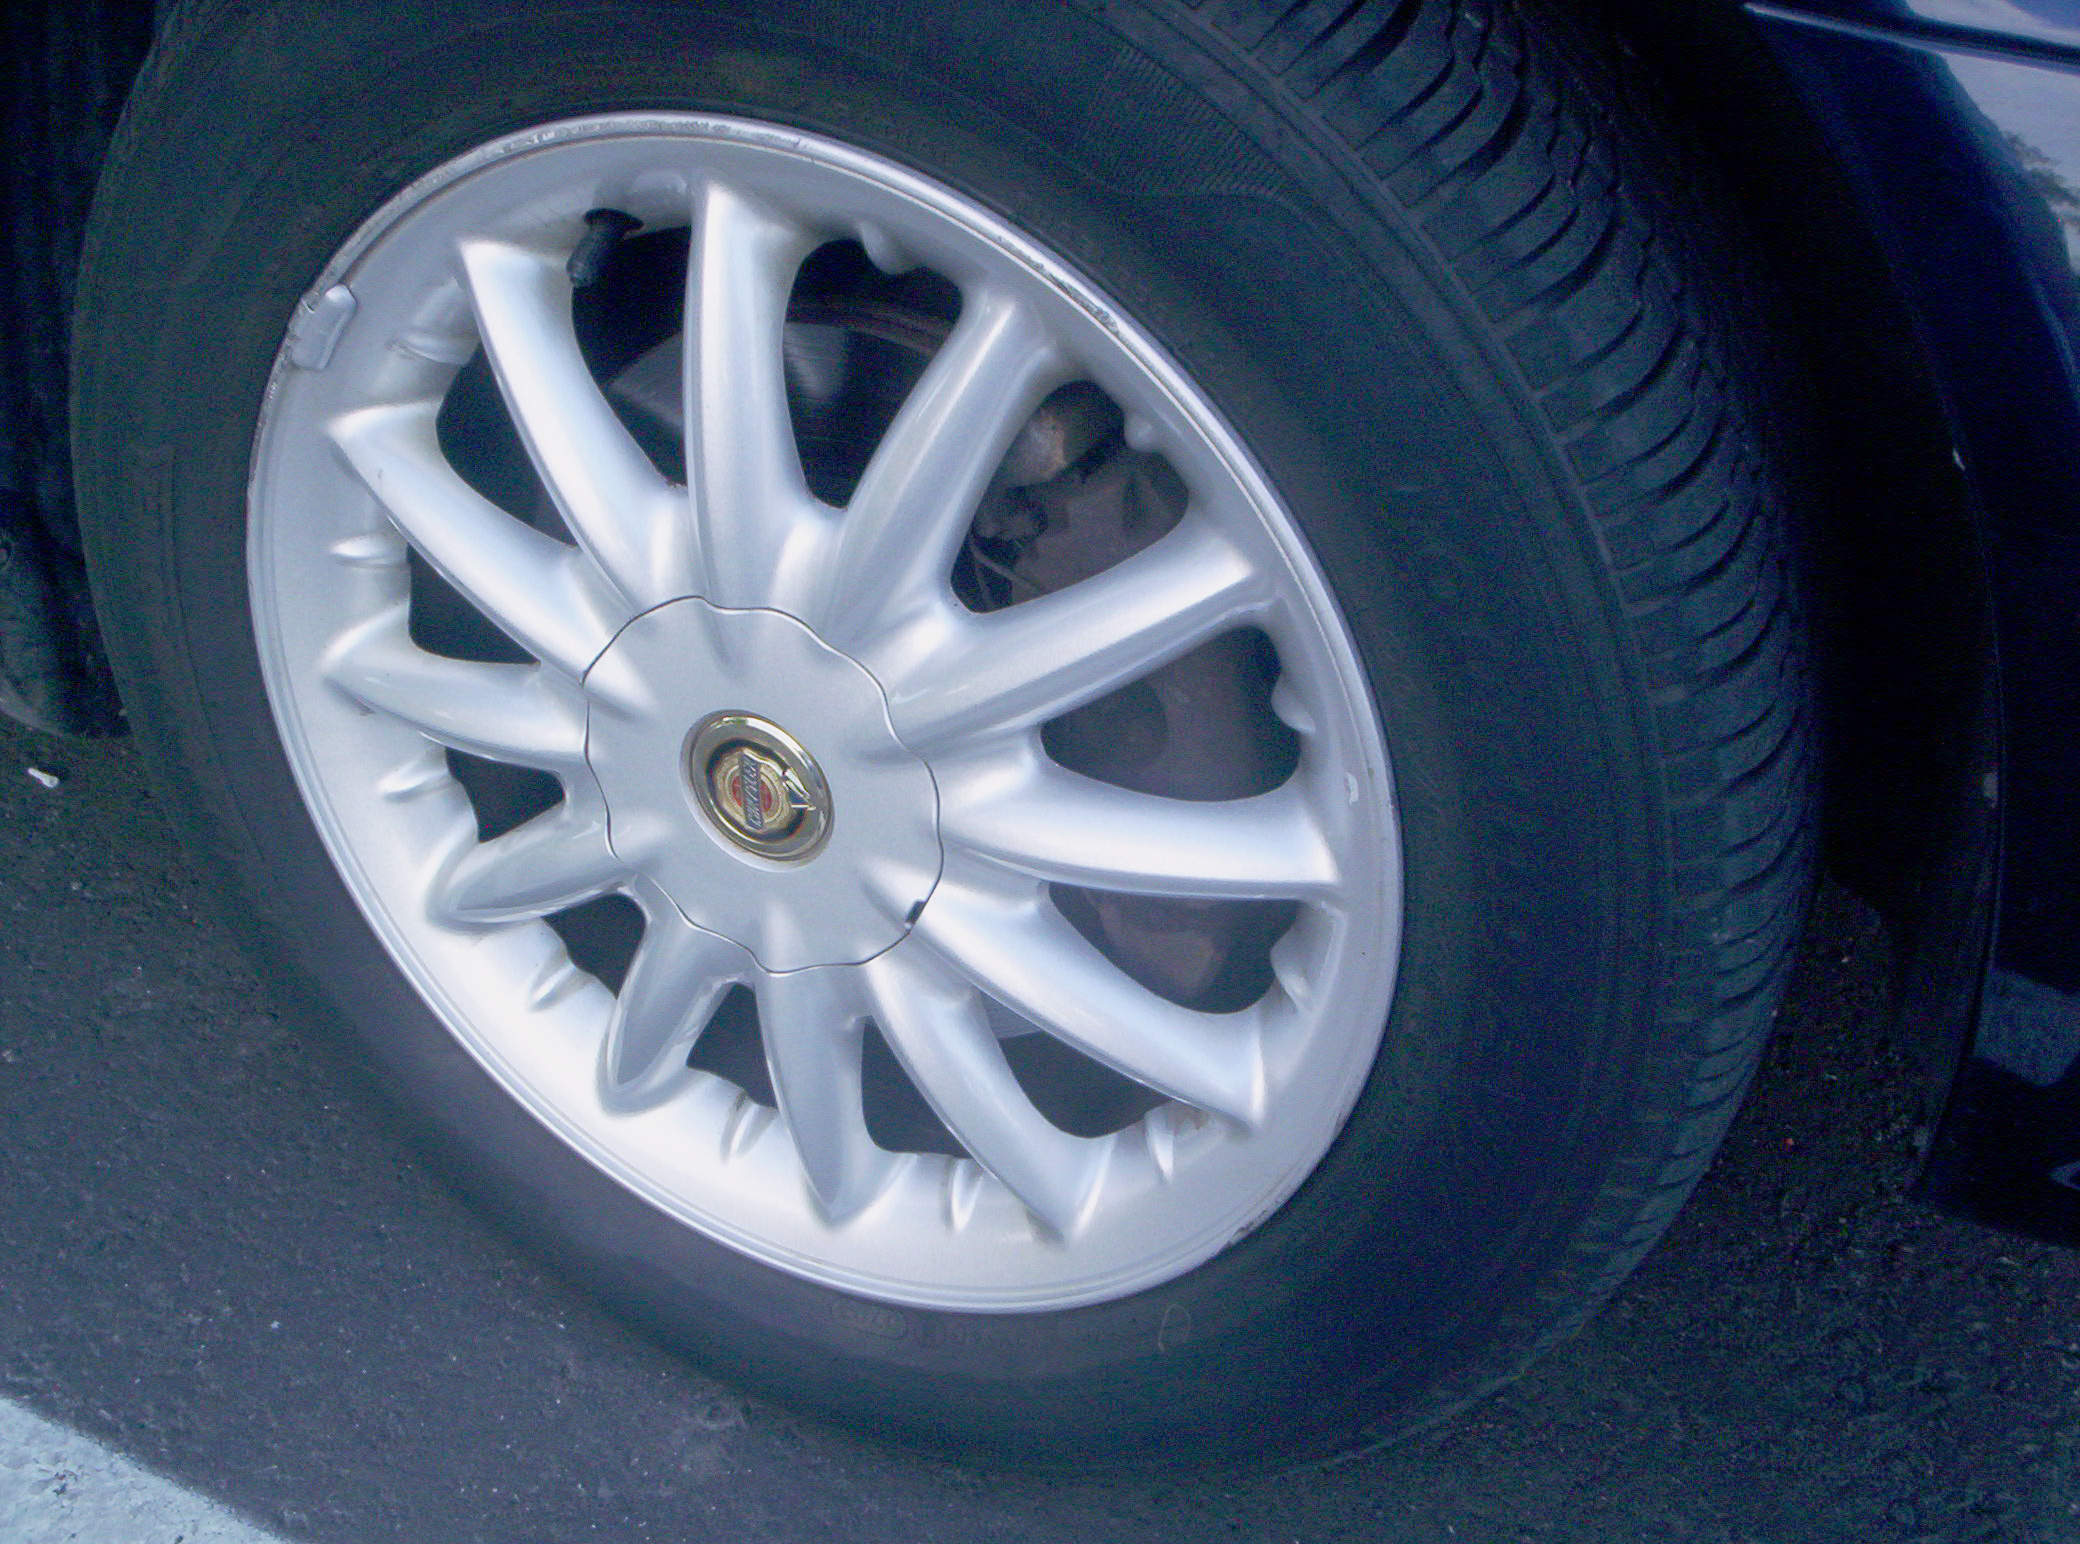 Chrysler alloy wheel from Wiki Commons - used car wheels replacement mags trim body